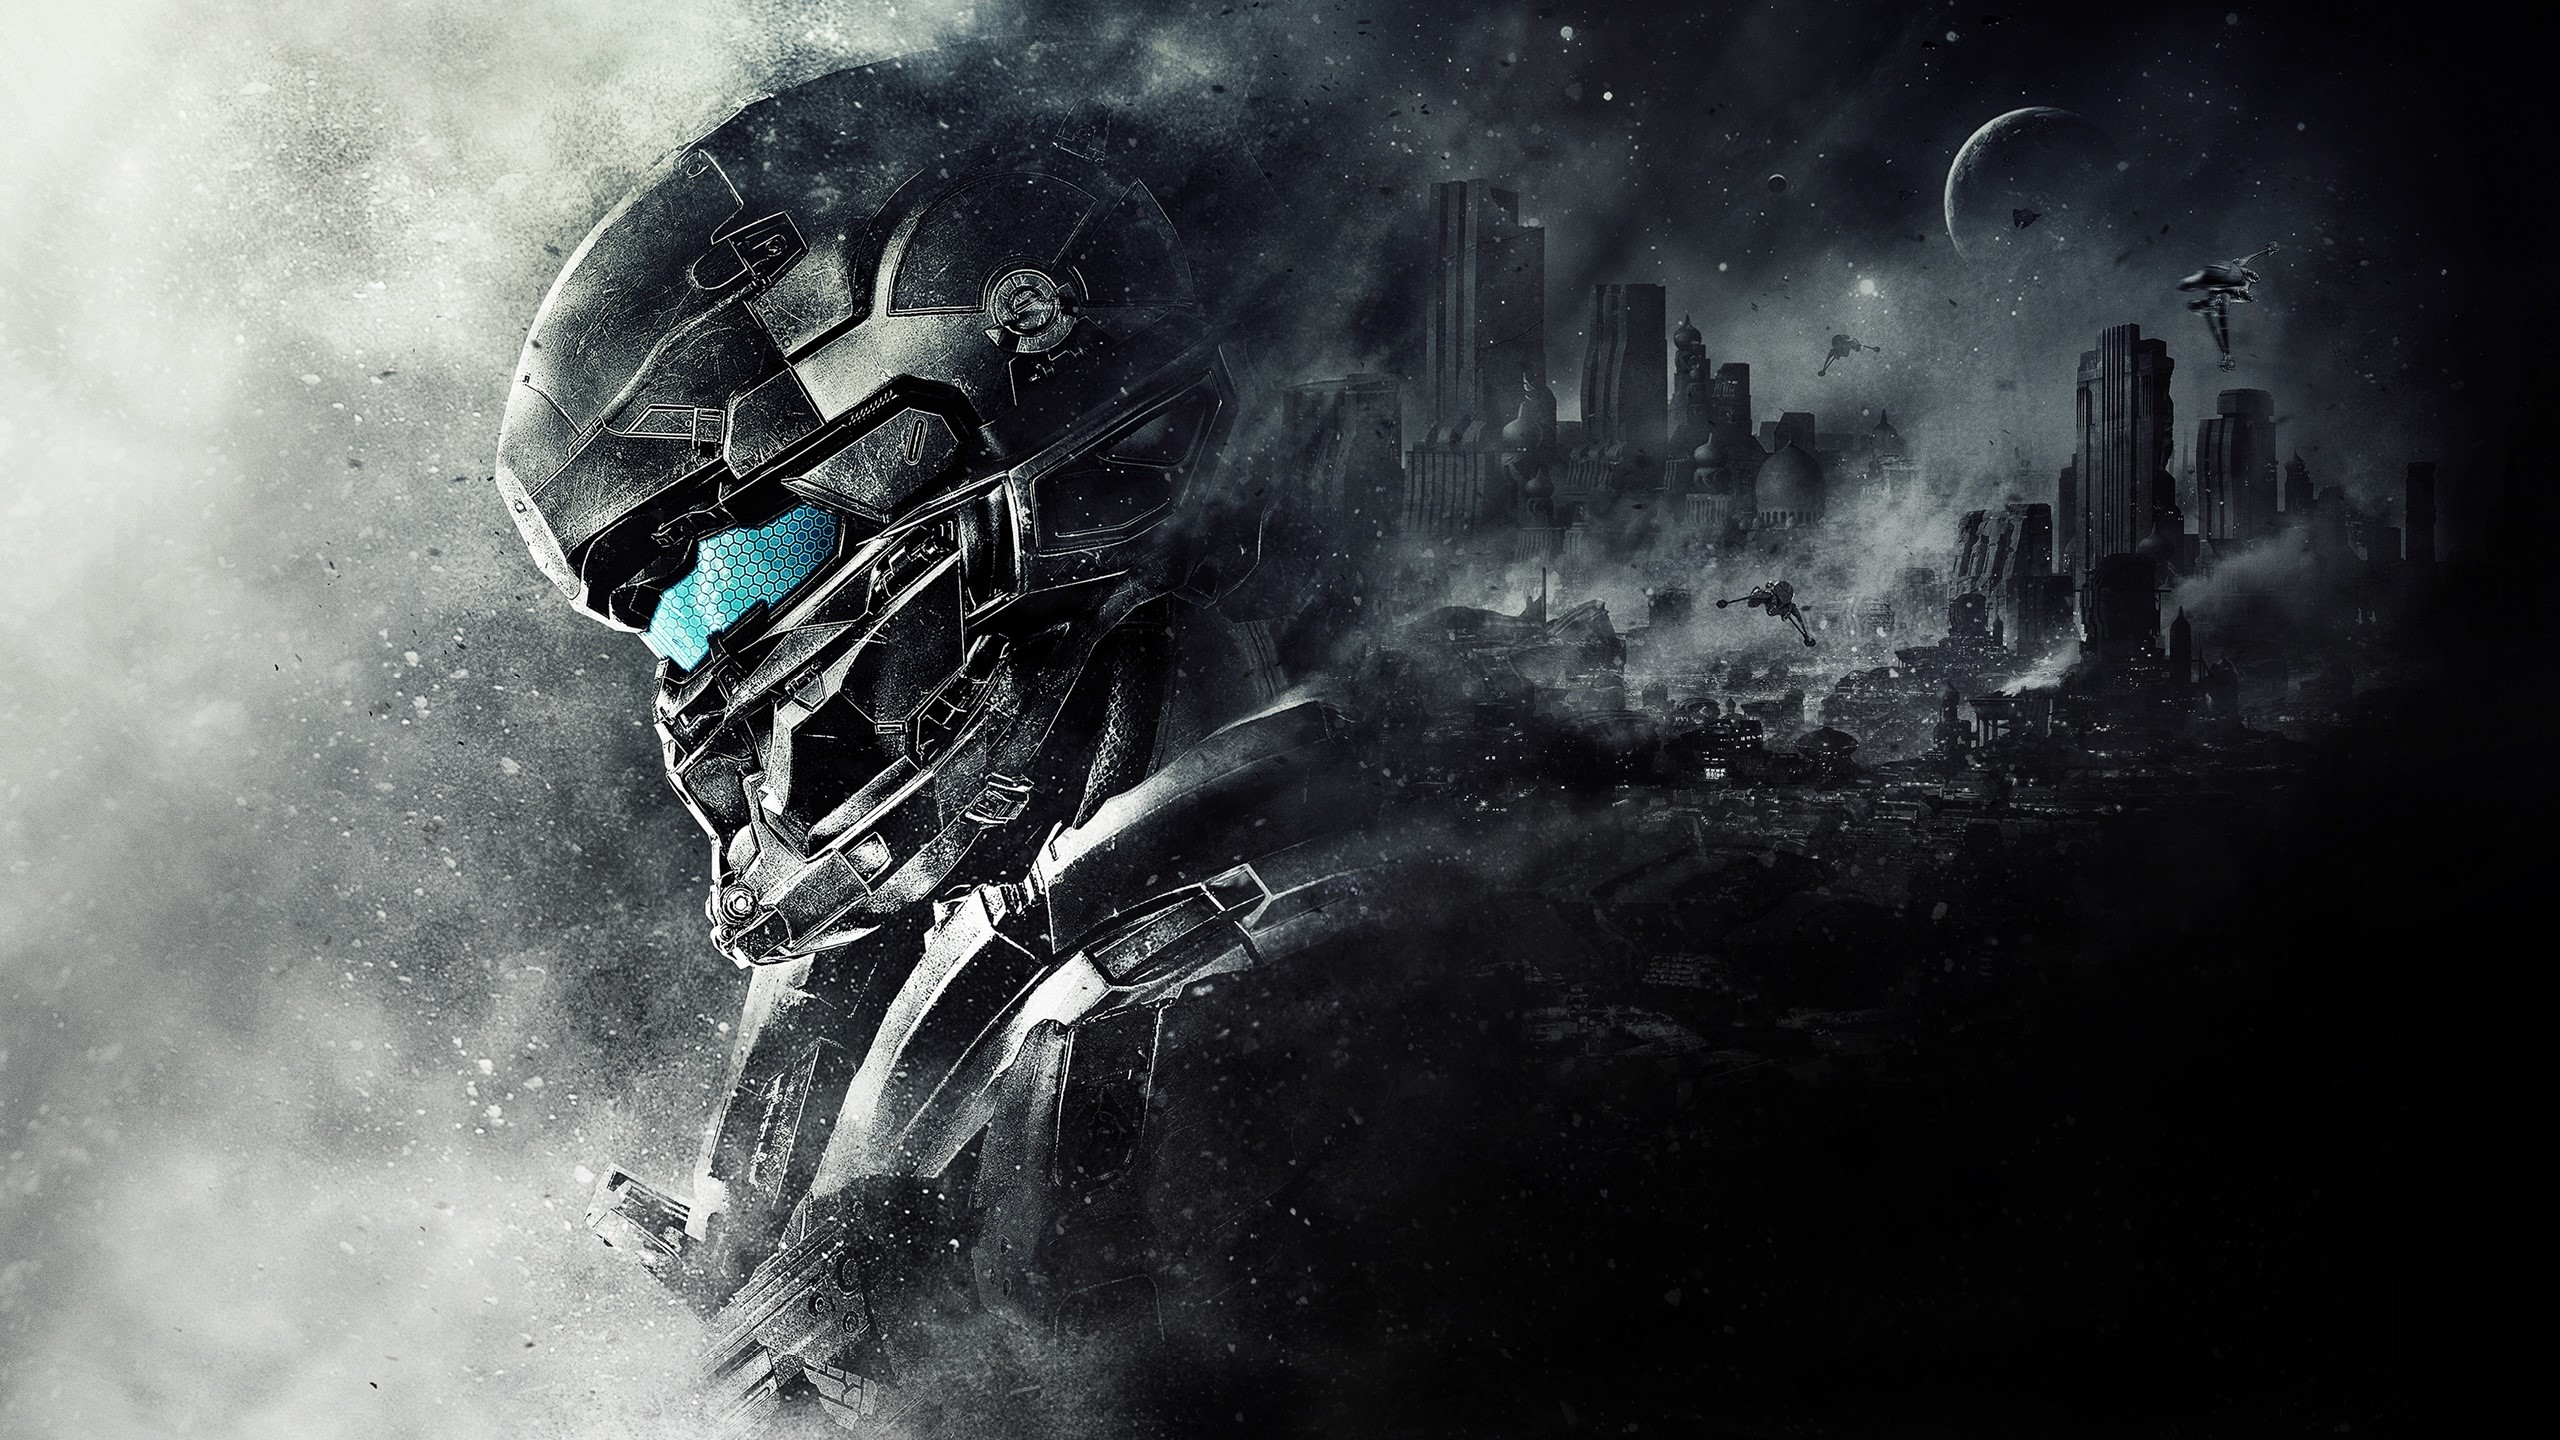 Wallpaper Spartan Locke Halo 5 Guardians Images